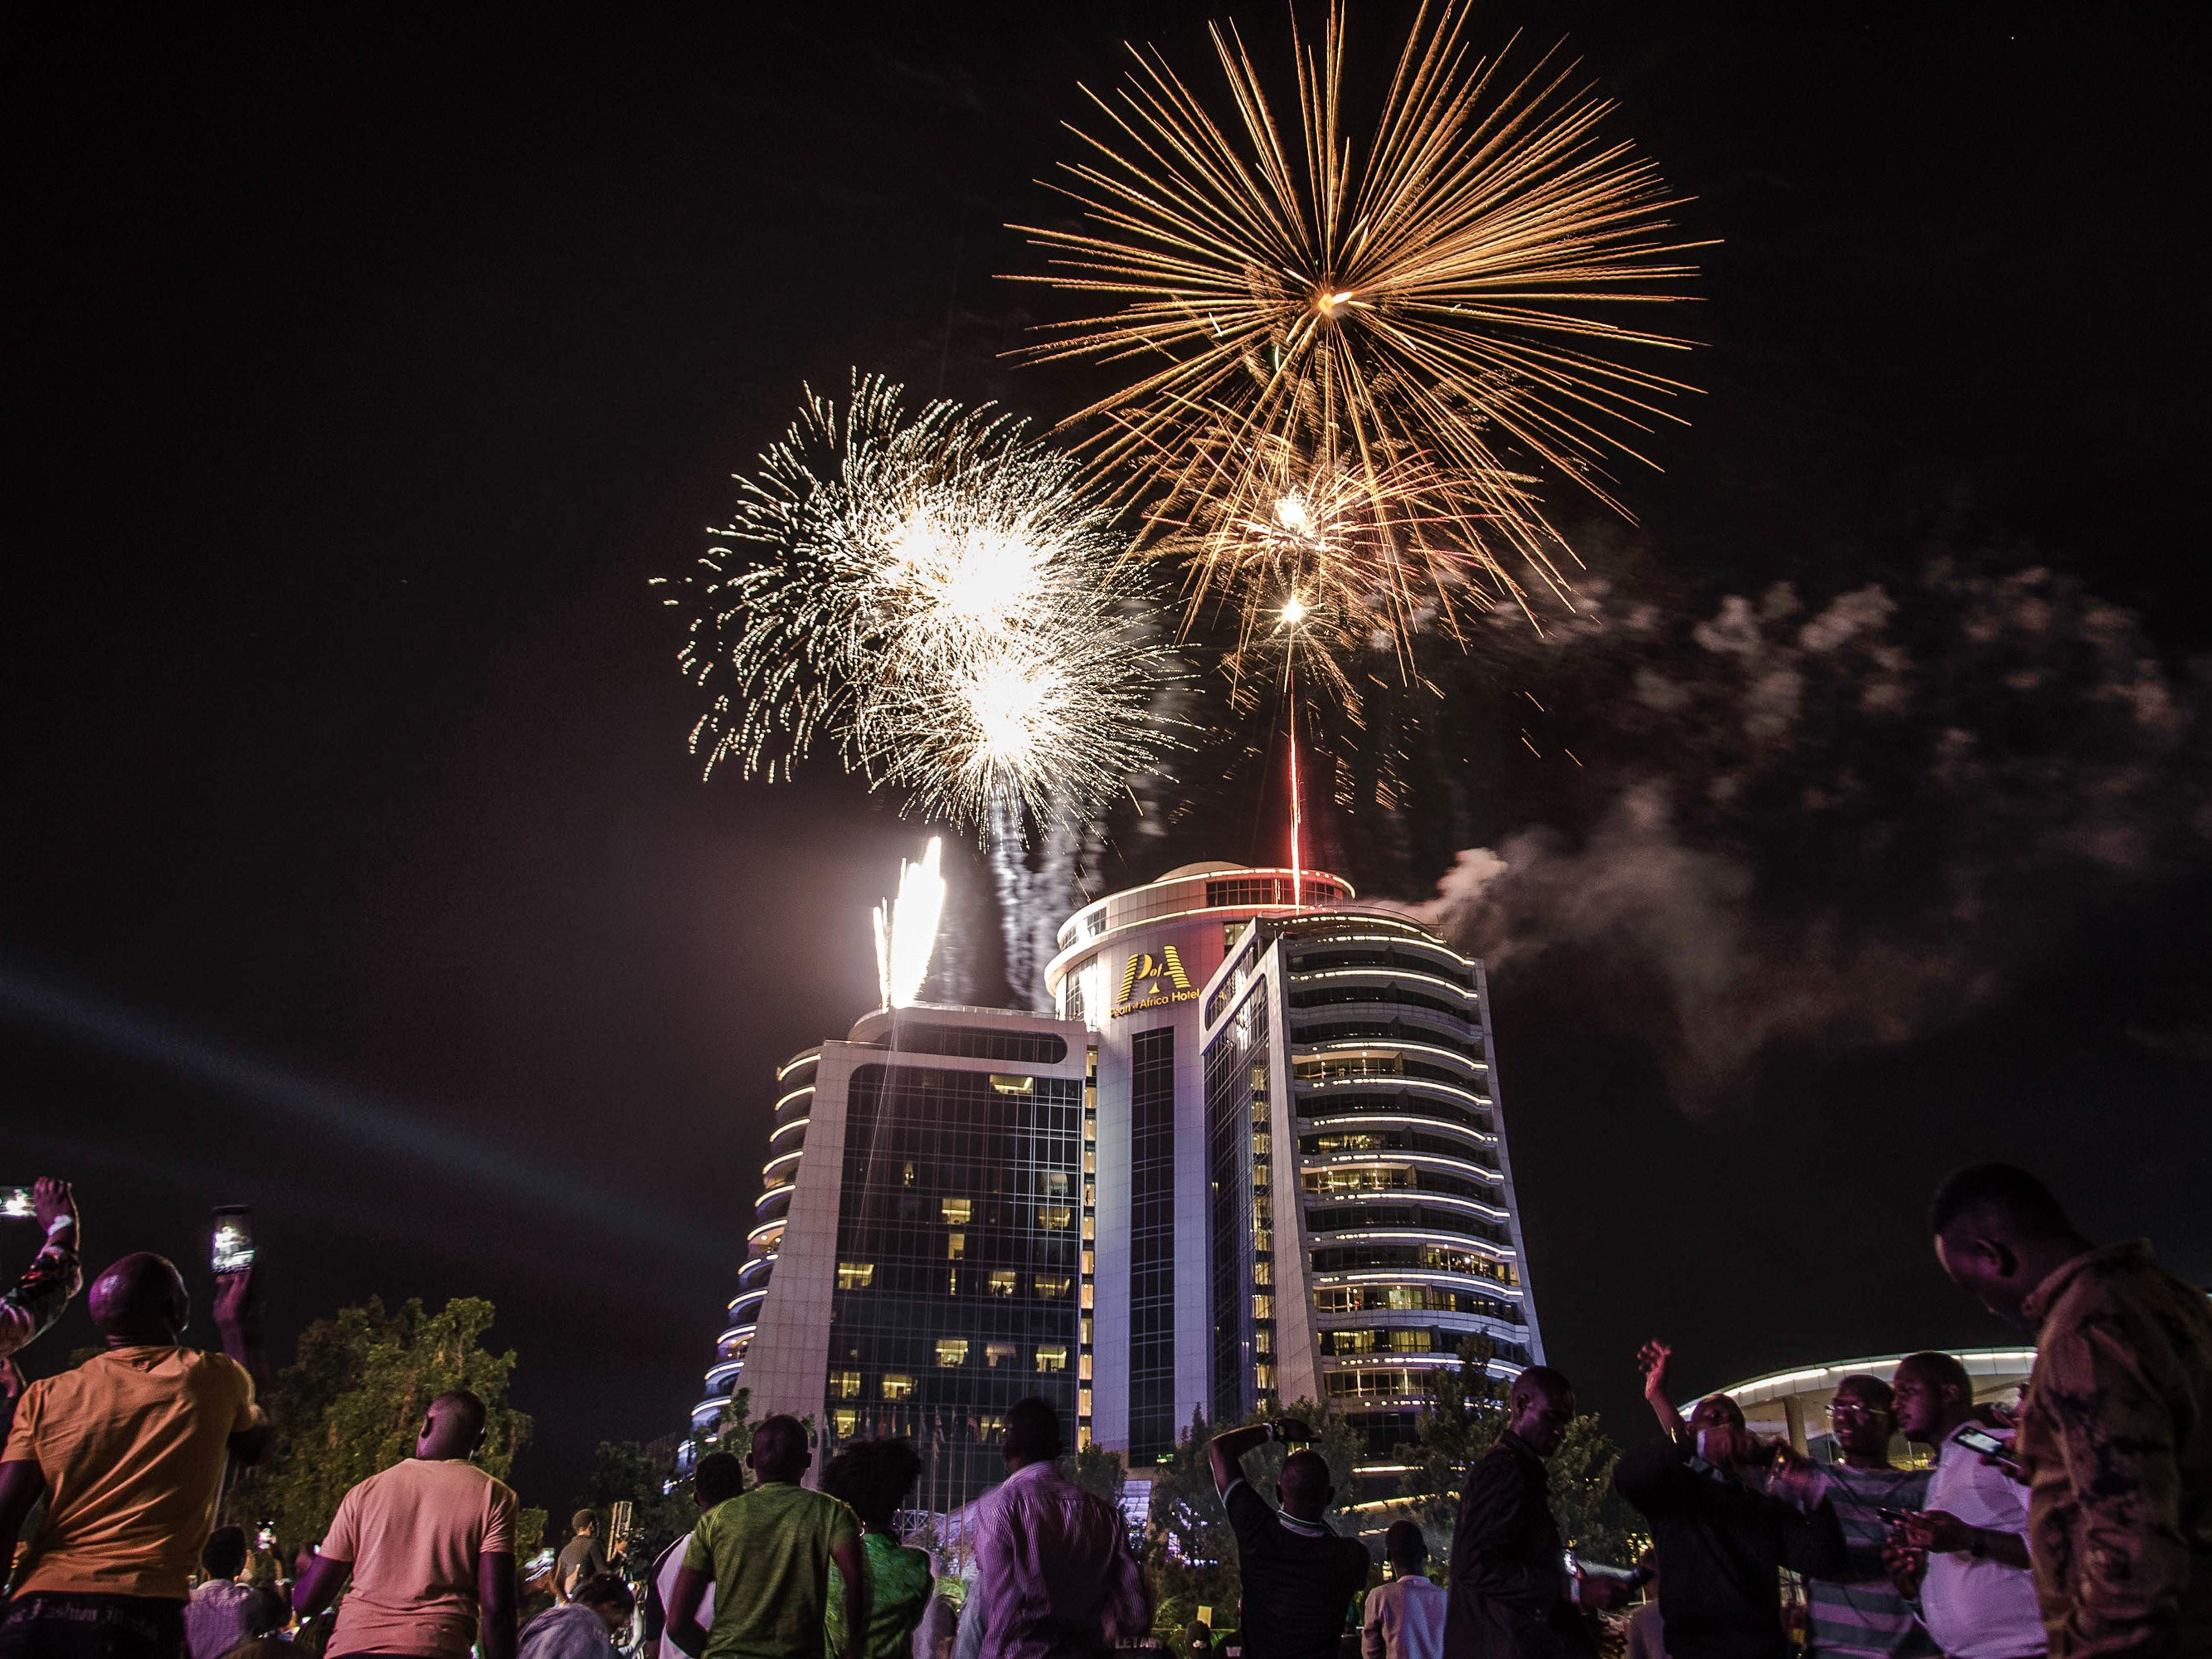 People watch fireworks launching at the Pearl of Africa Hotel to celebrate a New Year in Kampala on January 1, 2019. (Photo by Badru Katumba / AFP)BADRU KATUMBA/AFP/Getty Images ORIG FILE ID: AFP_1BX0XE